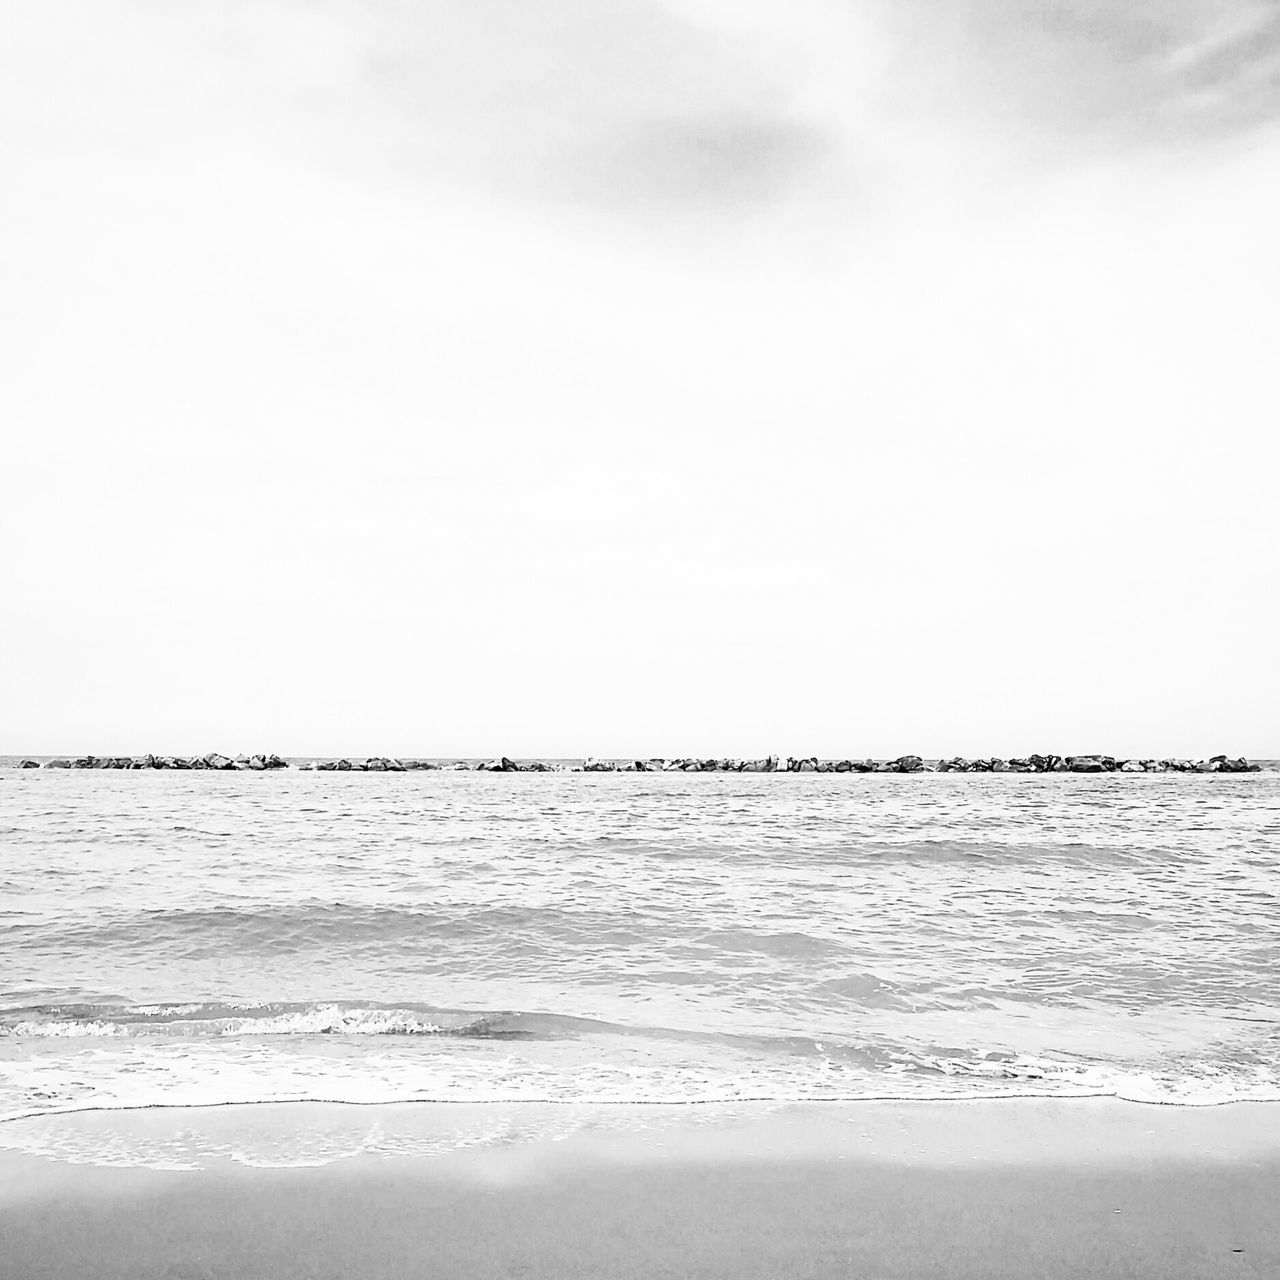 Blackandwhite Photography Monochrome _ Collection Monochrome B&W Collective Sea Gray Heaven Black & White